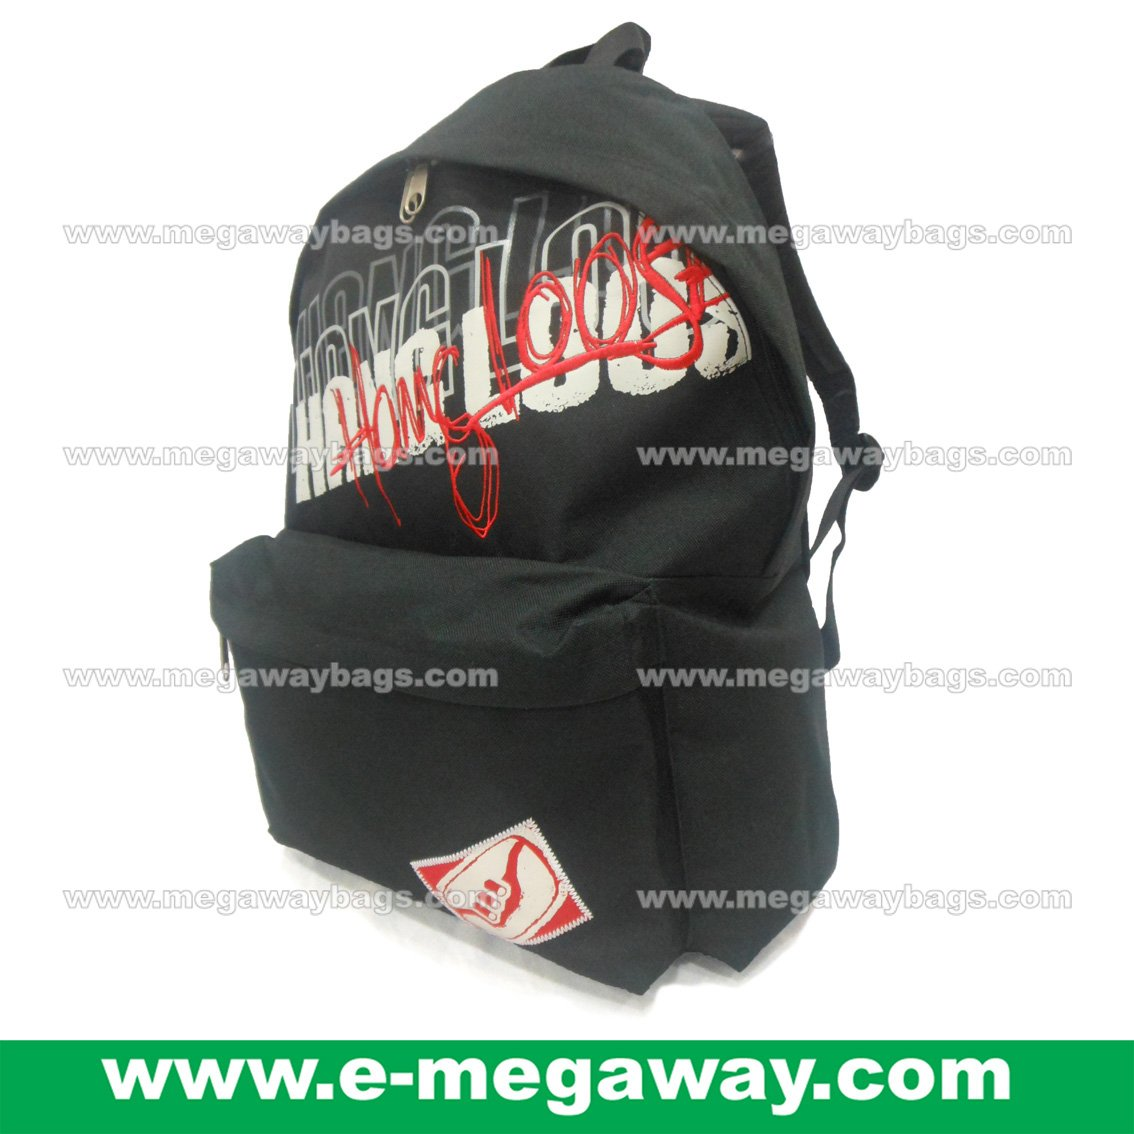 Hang Loose Backpack Nylon Backpack Rucksack Day Pack Sports Outdoor MegawayBags #CC- 0983A